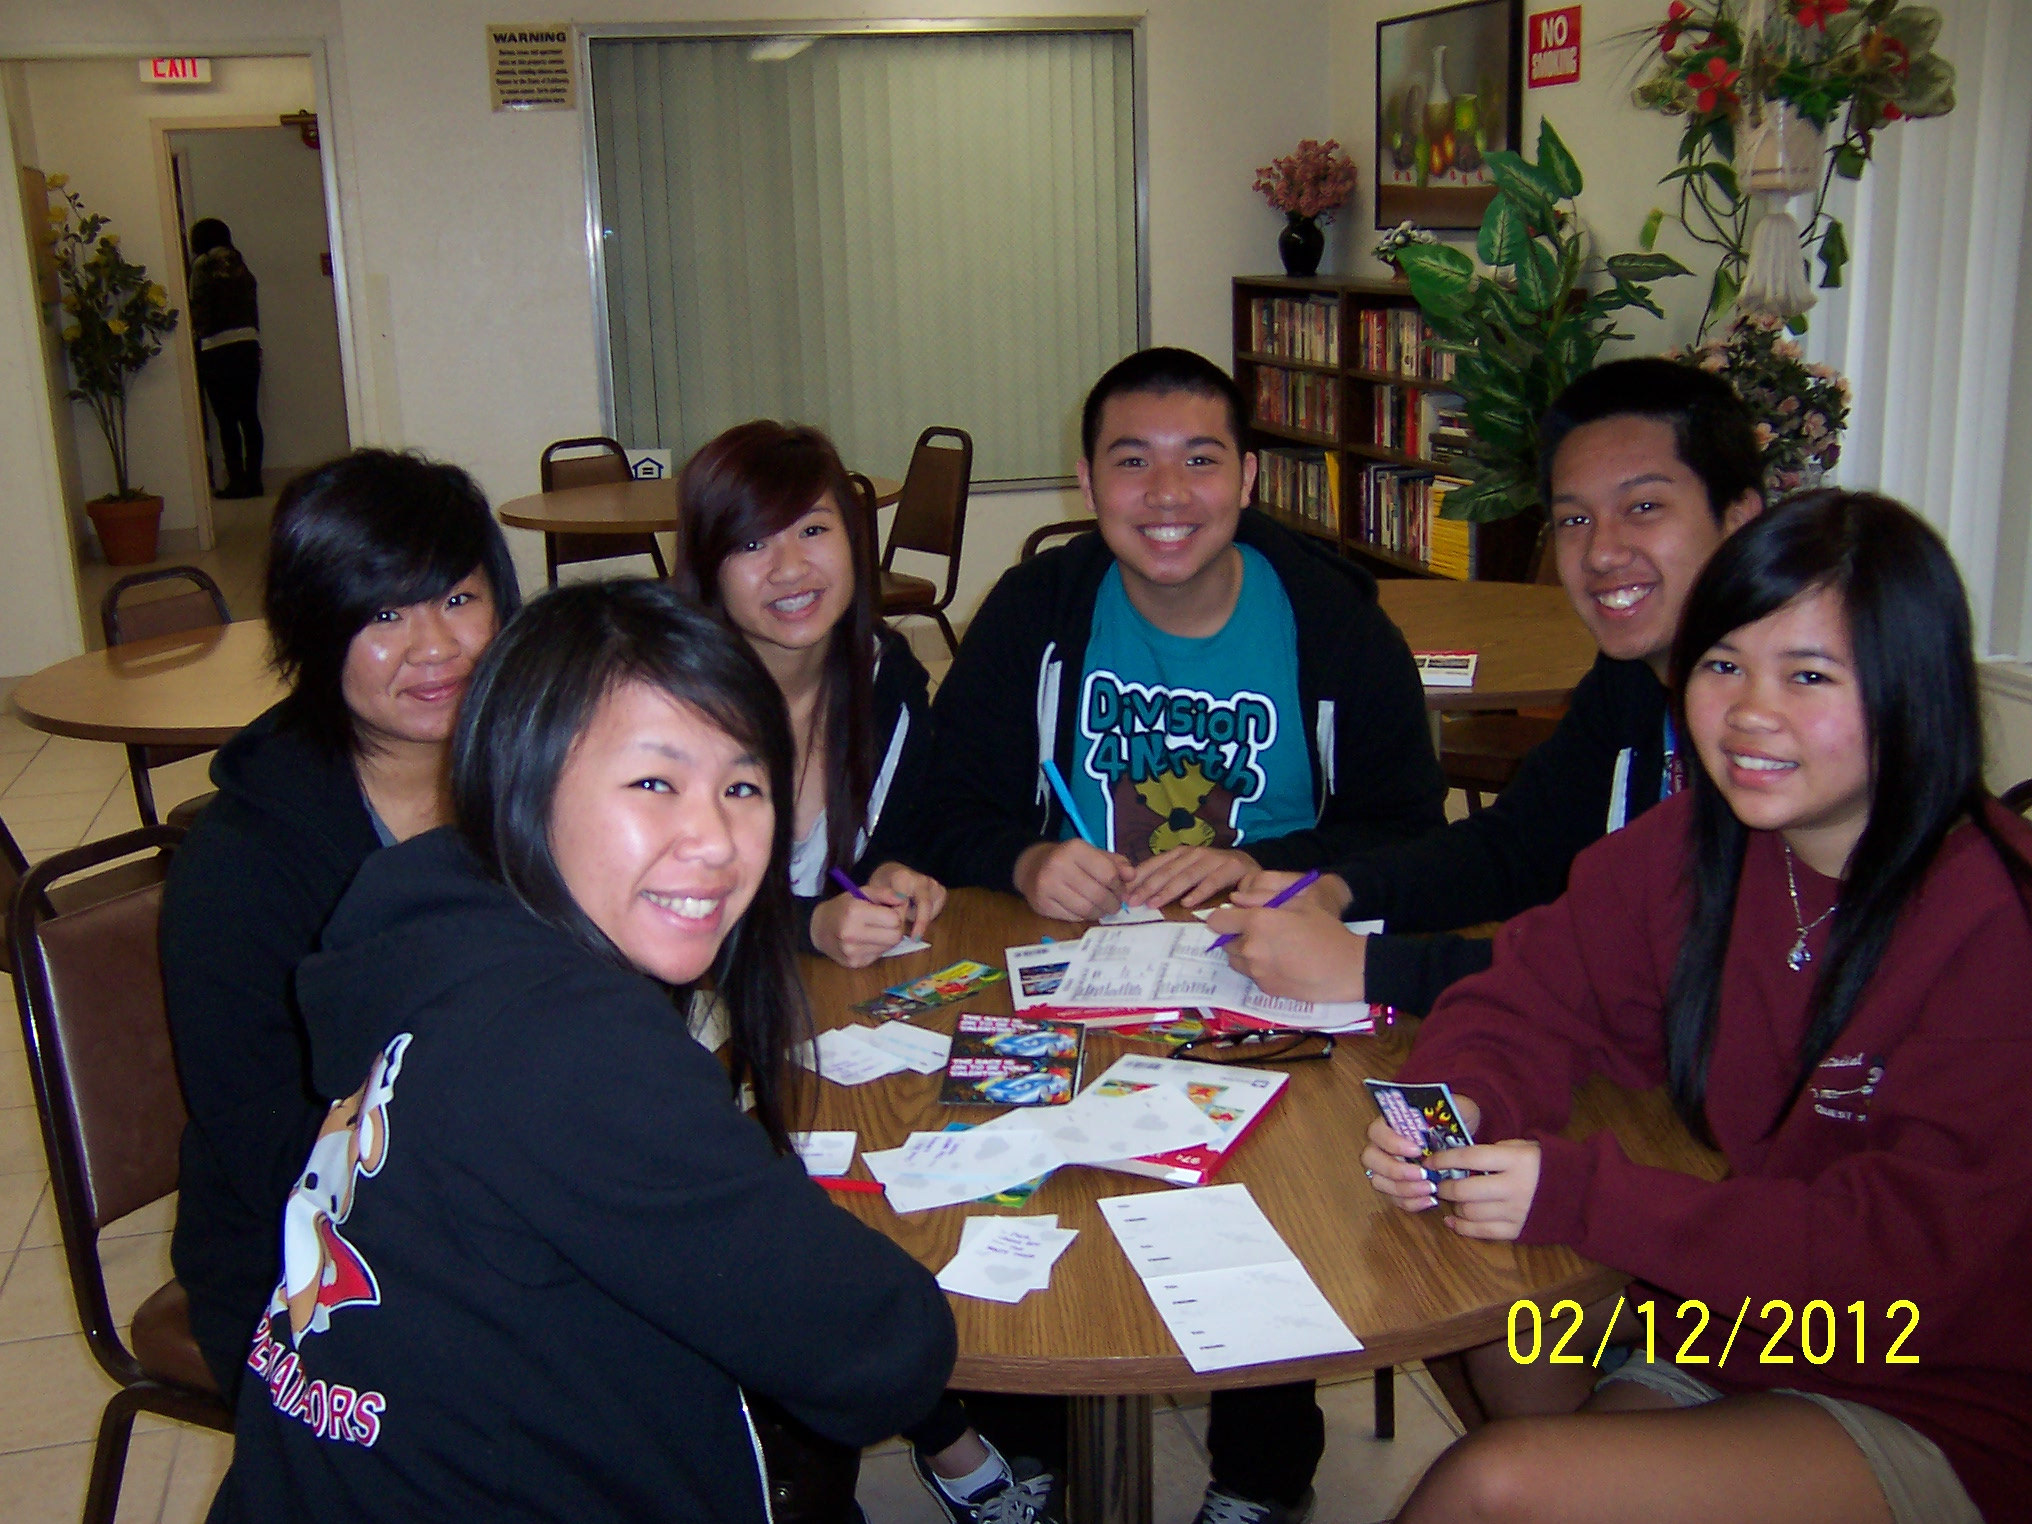 2012-02-12_WADY-Team-Party-for-Frail-Seniors_0005.JPG